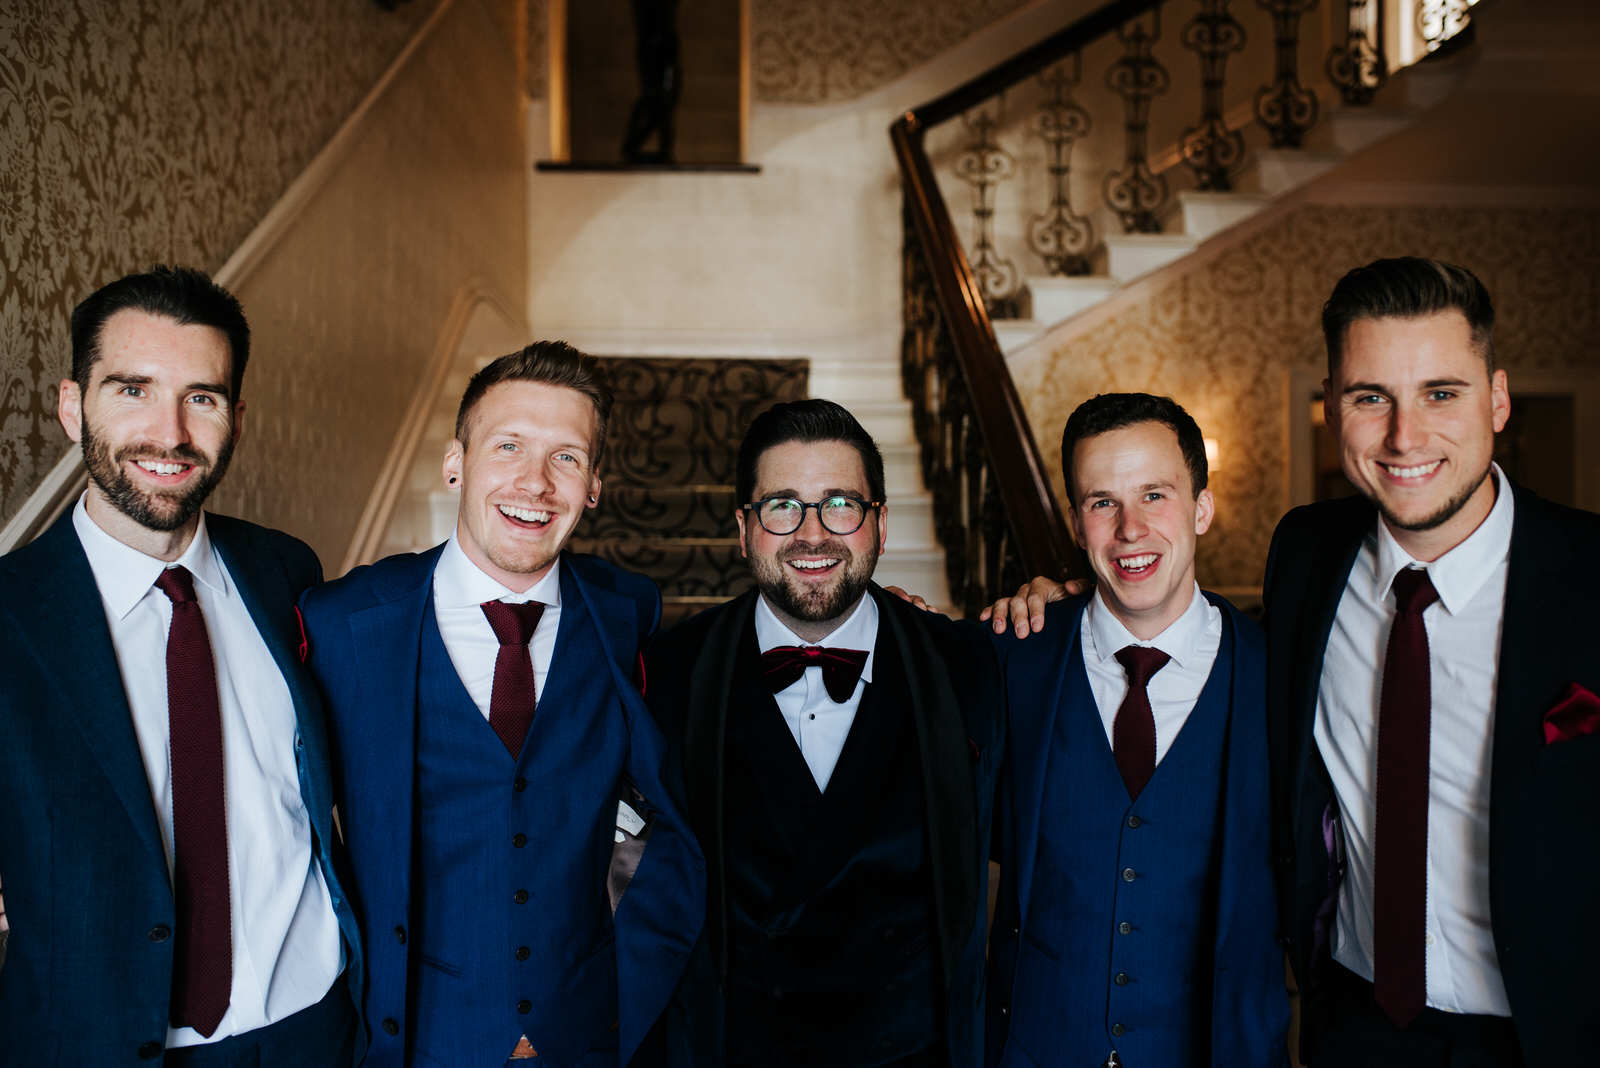 Group-shot of groom and groomsmen as they prepare to leave The Petersham hotel